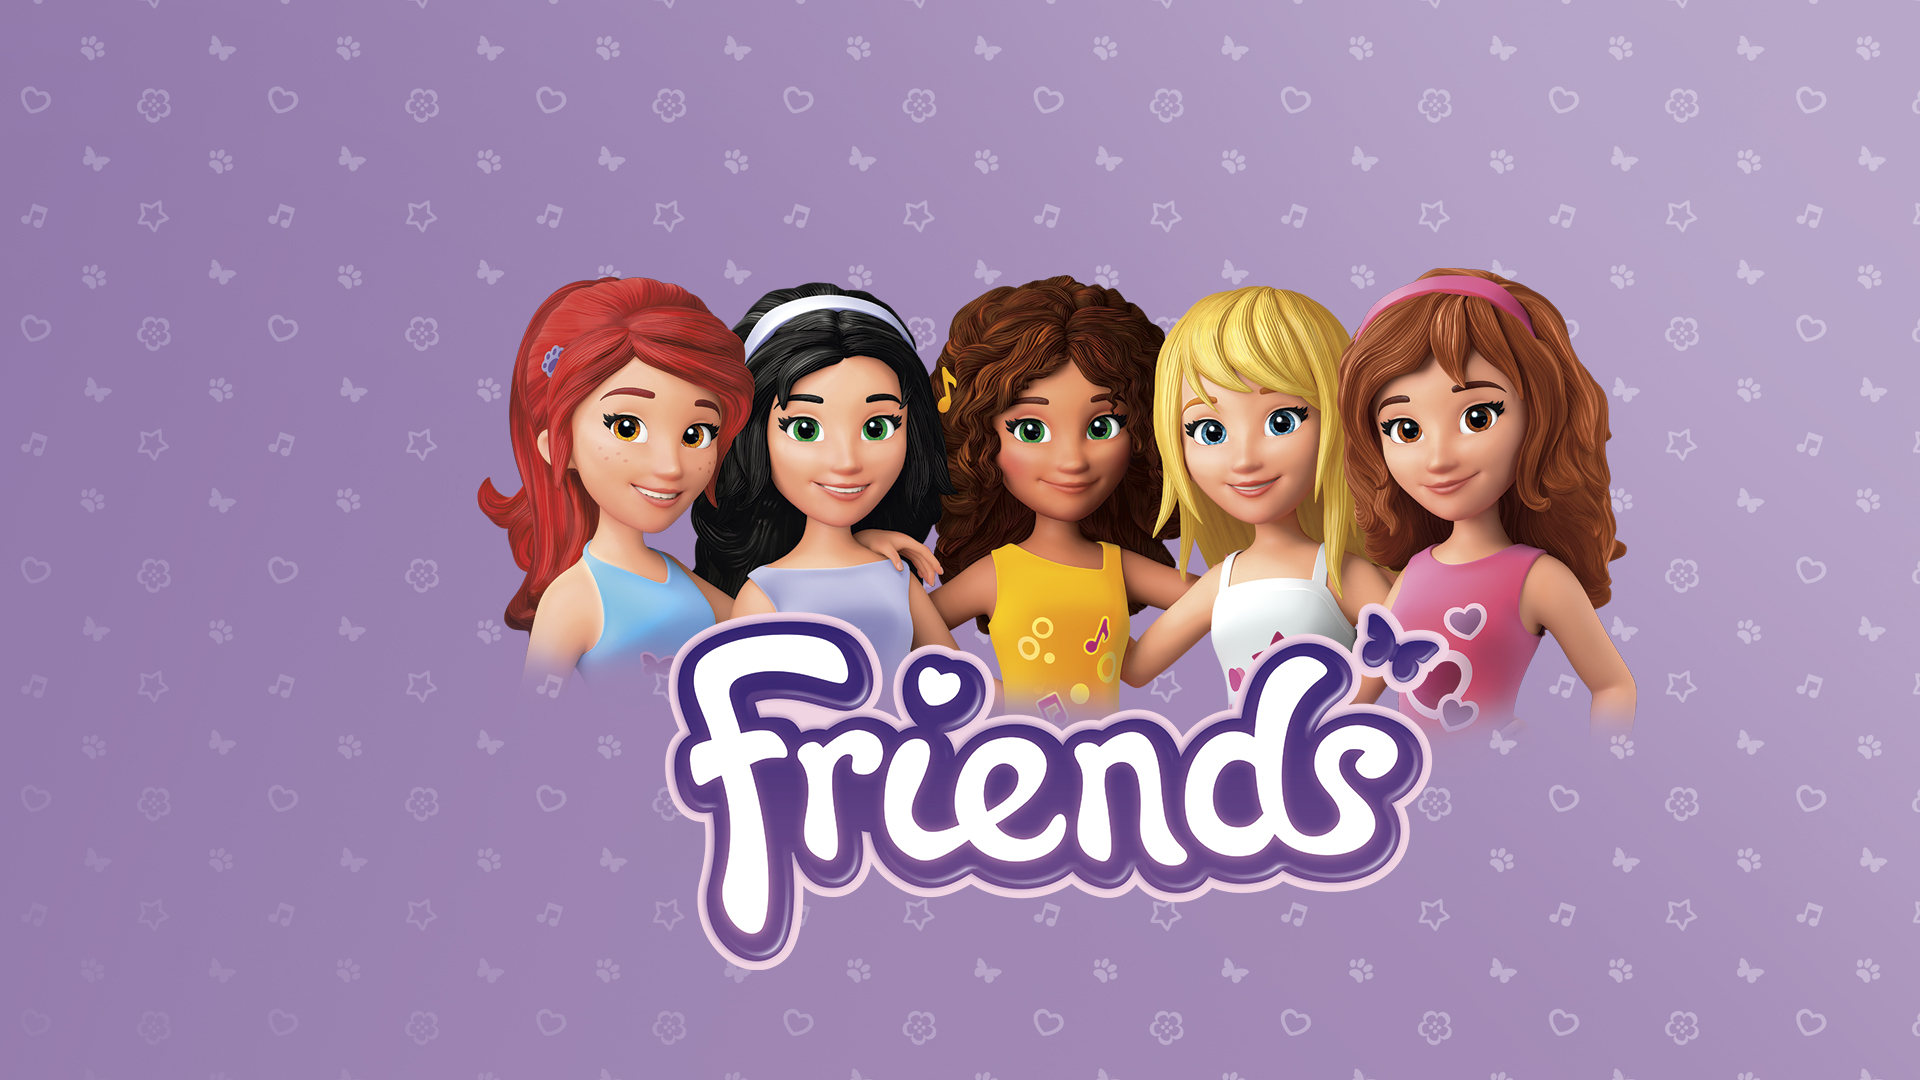 LEGO Friends Ad Campaign Digital Advertising RED 1920x1080